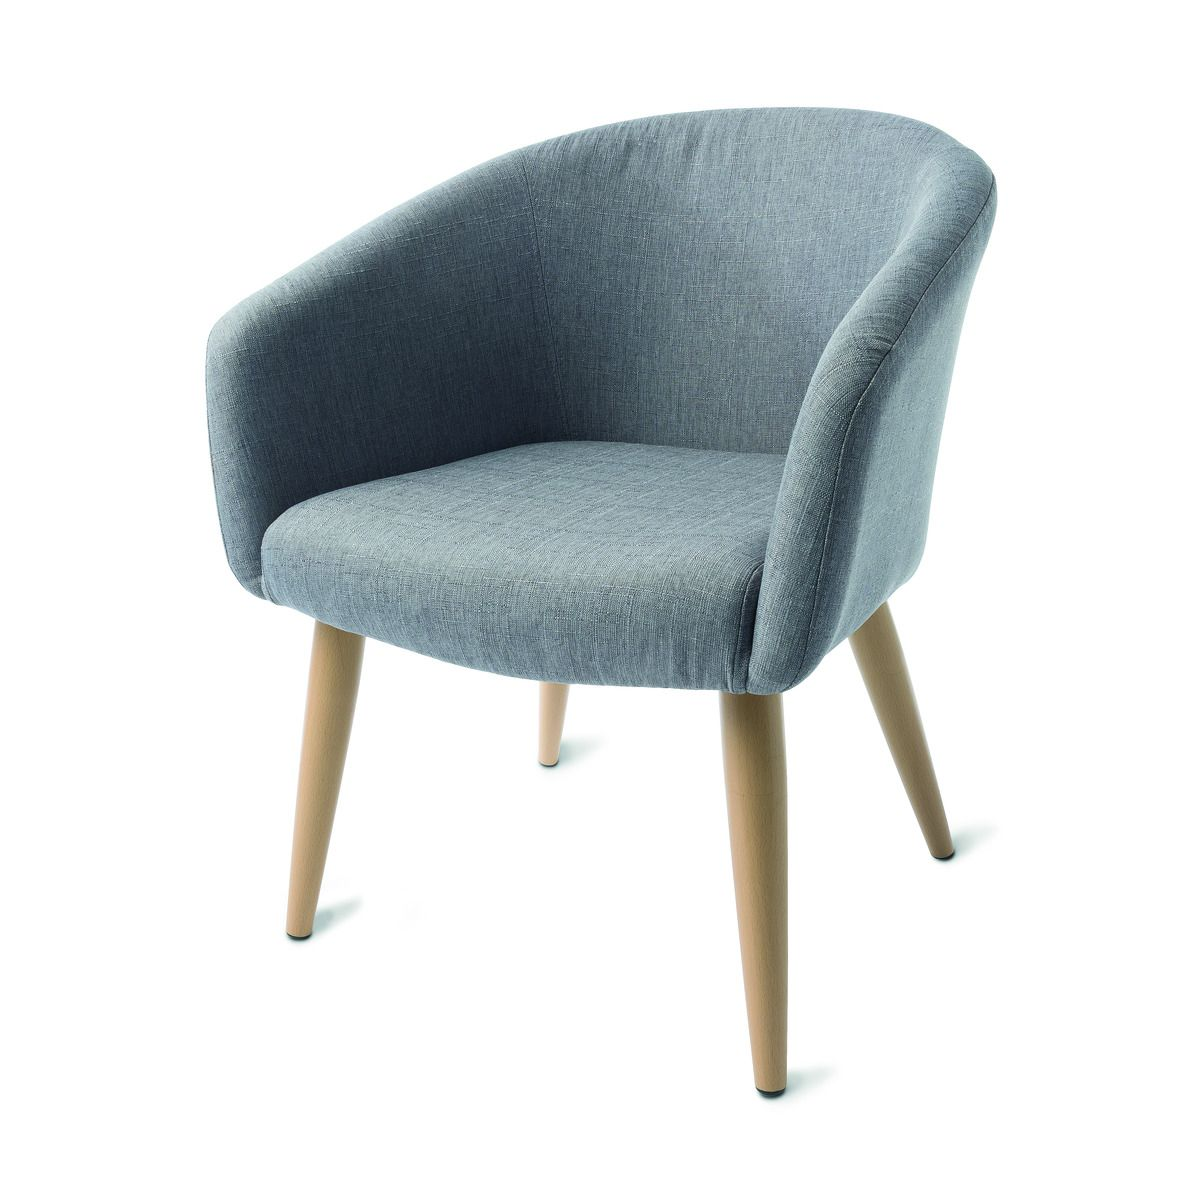 Occasional Chair | Occasional chairs, Bedrooms and Room